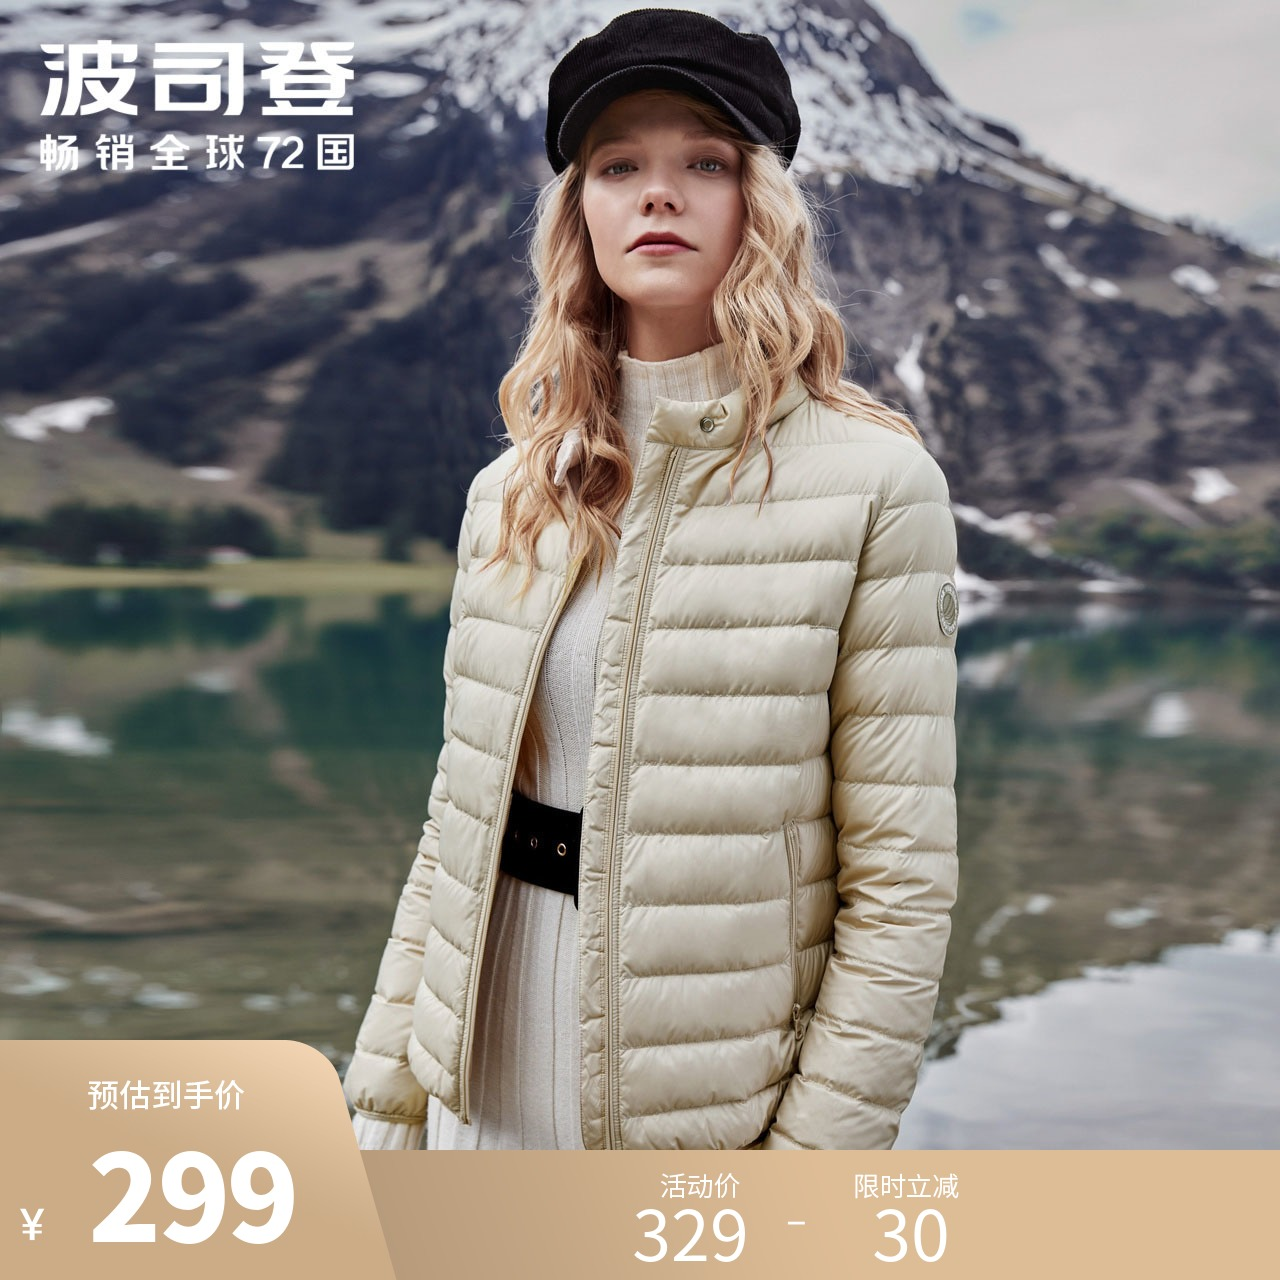 Bosideng lightweight down jacket ladies short autumn and winter new fashion simple stand-up collar slim-fit warm and cold jacket